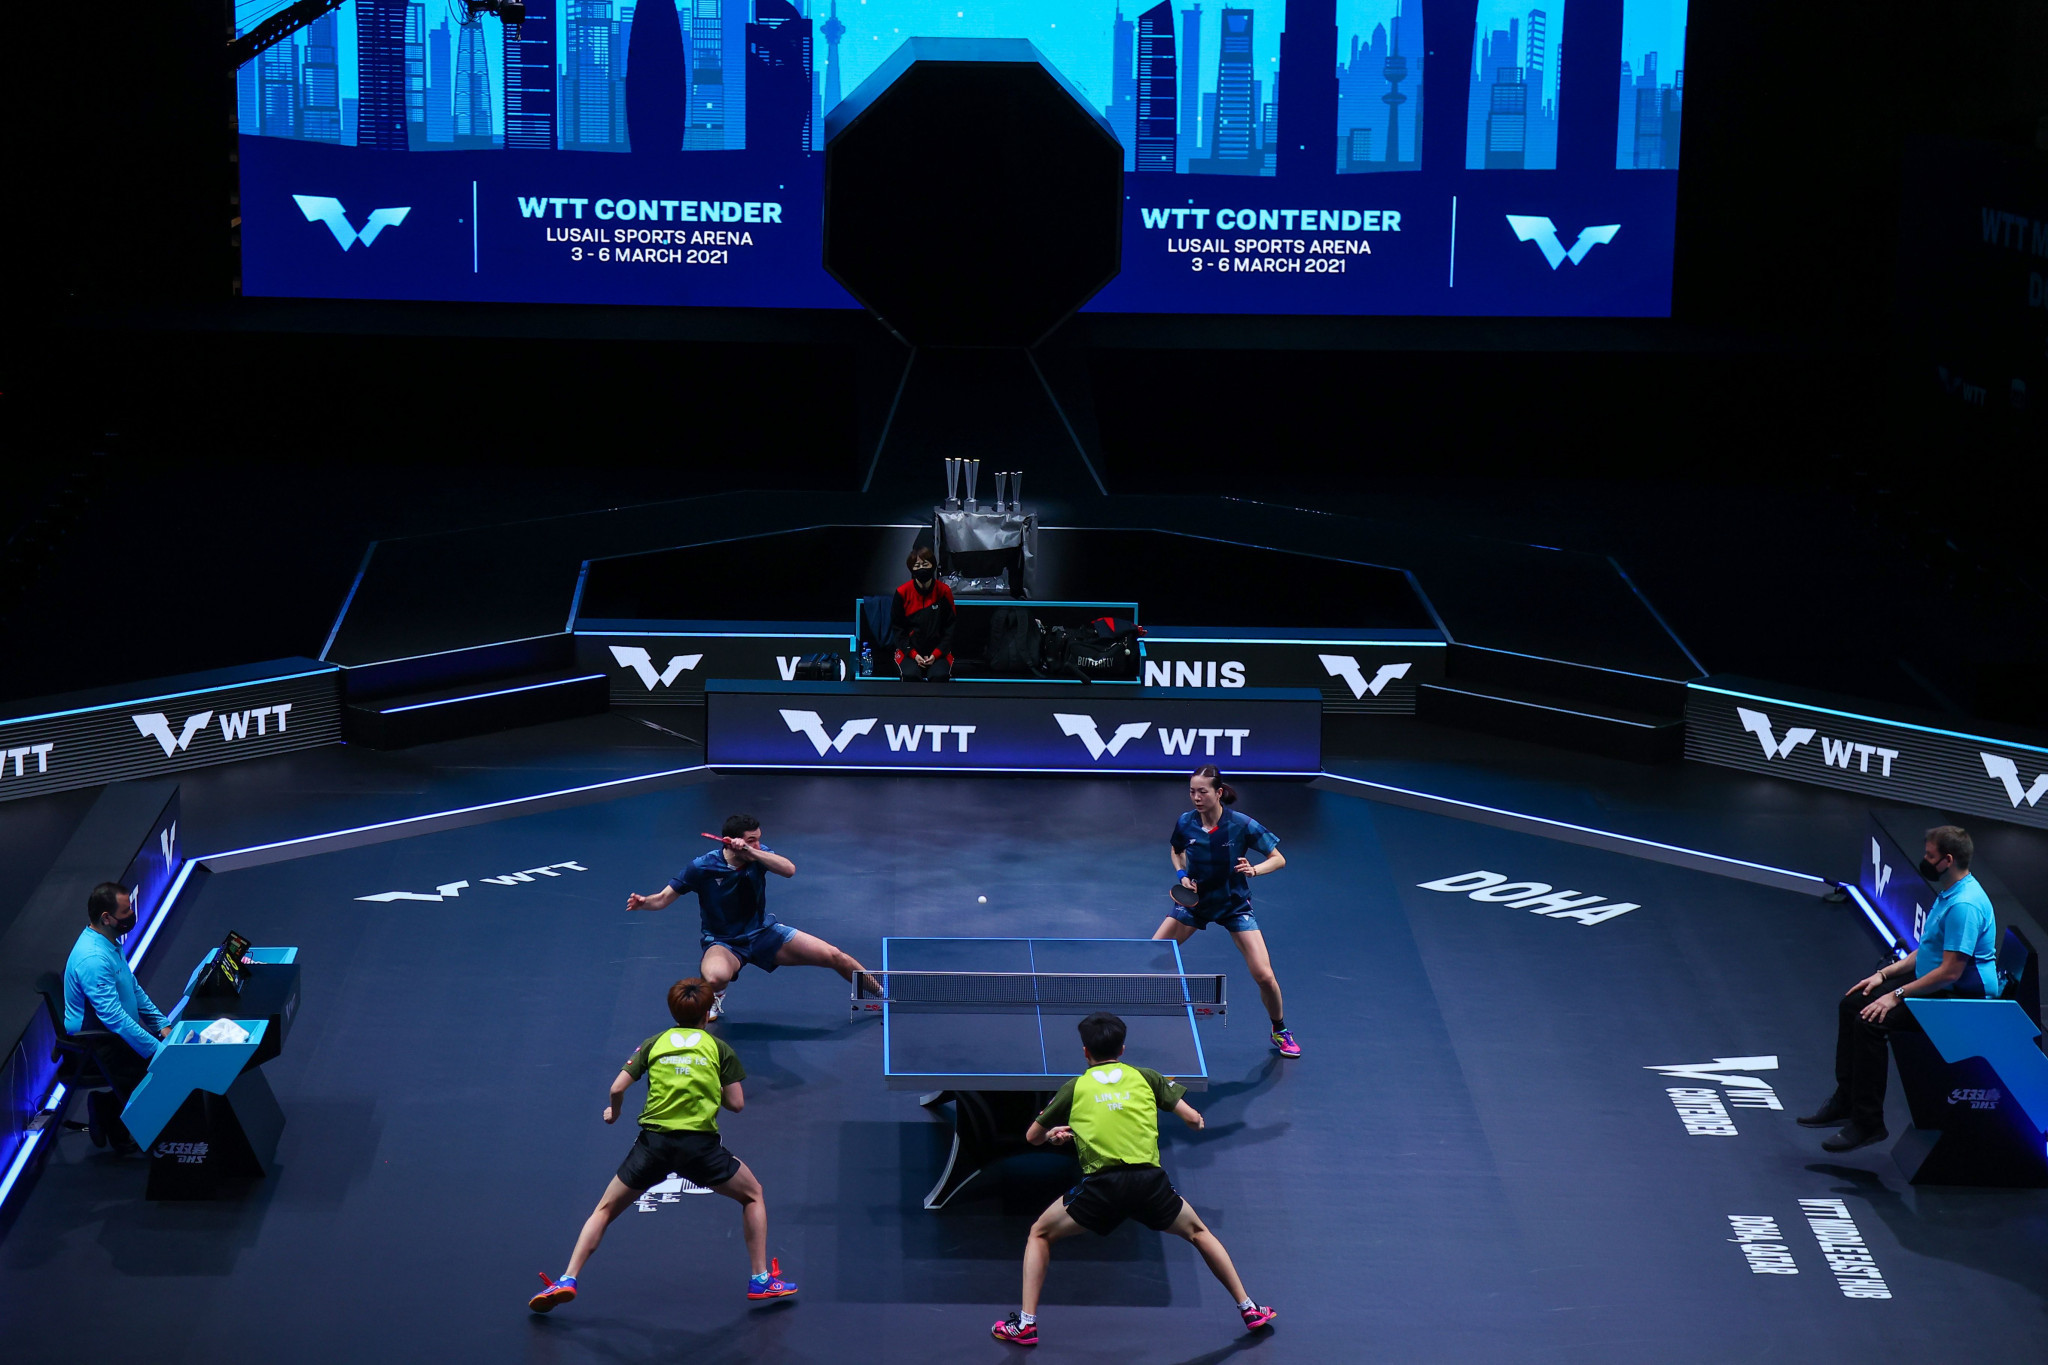 First European World Table Tennis event set to begin in Budapest